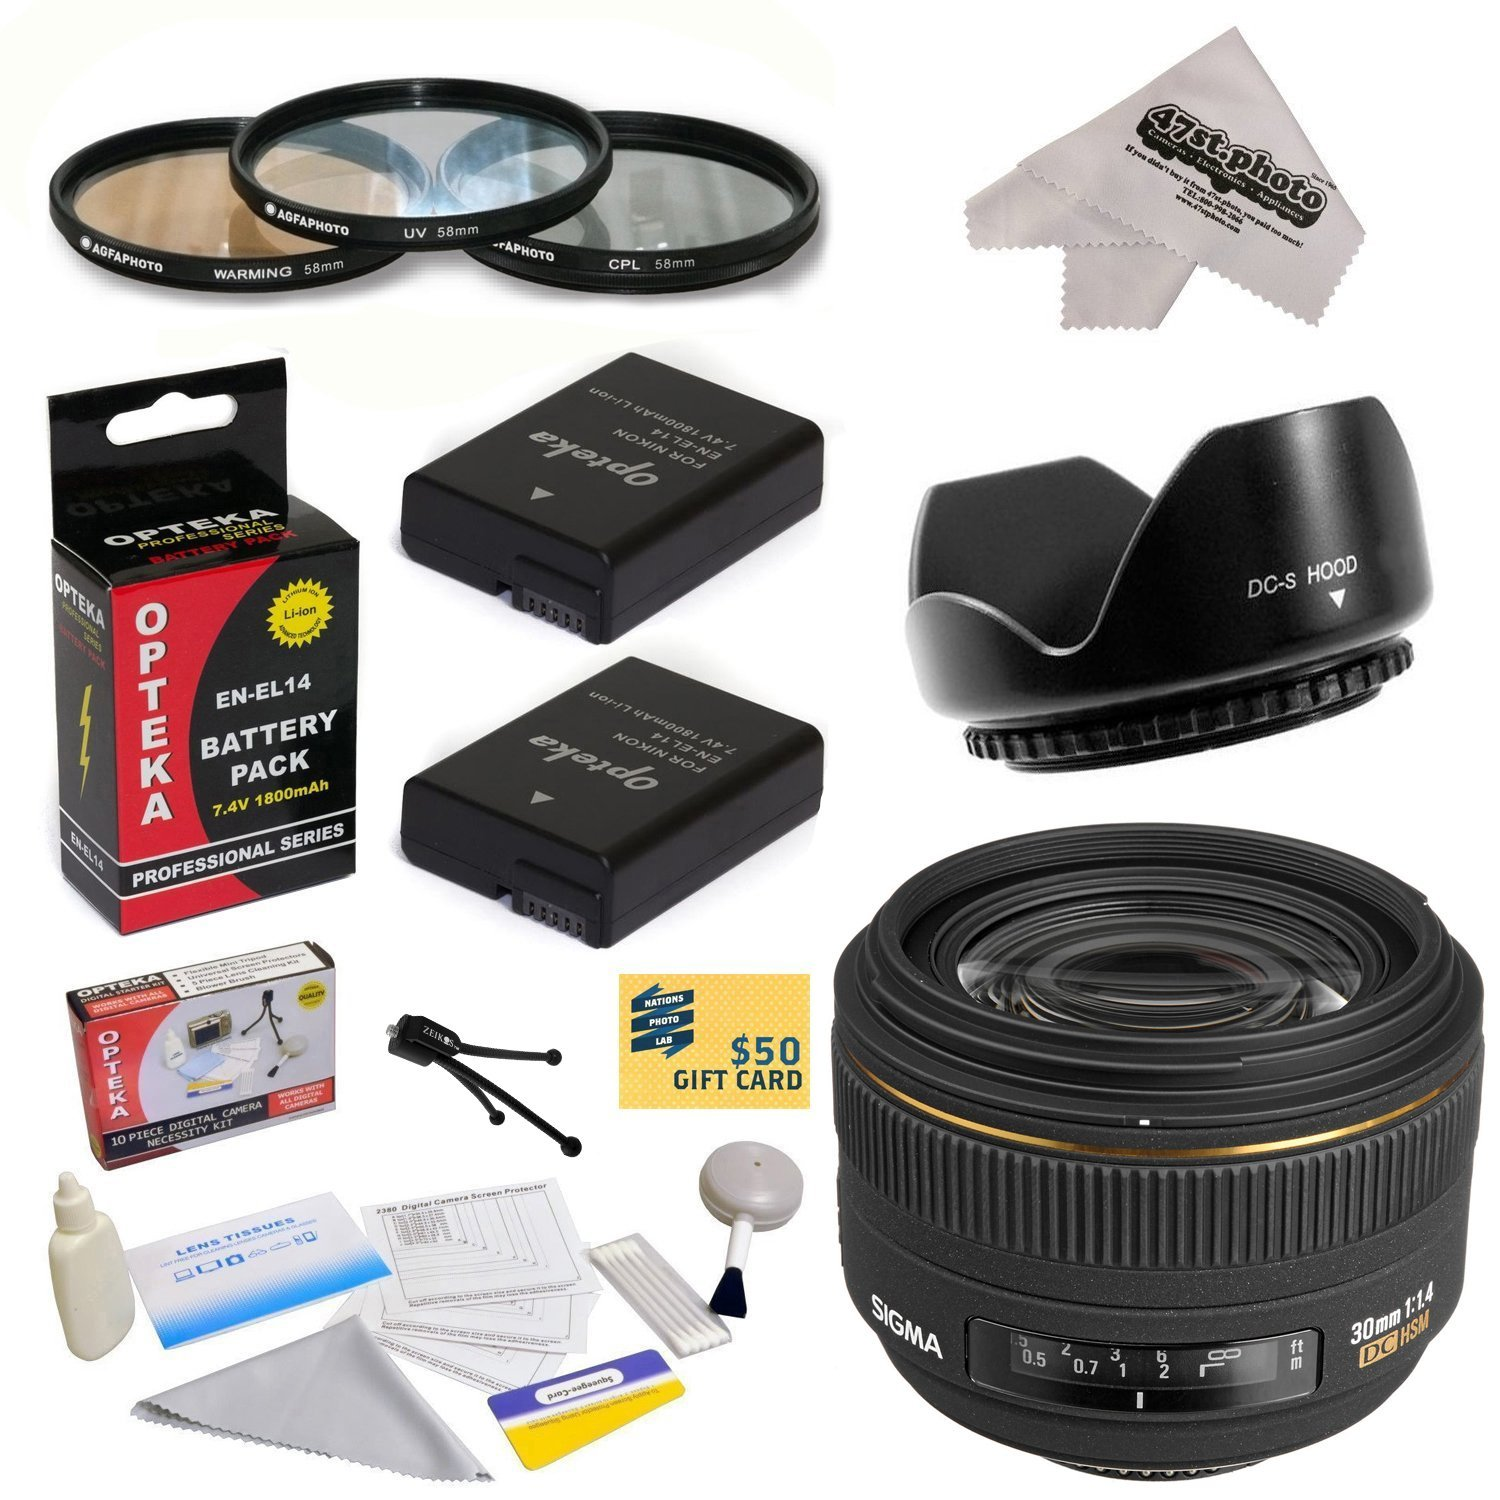 Sigma 30mm f/1.4 EX DC HSM Autofocus Lens for Nikon with 62MM 3 Piece Filter Kit, Flower Lens Hood, EN-EL14 Batteries, Cleaning Kit, Mini Tripod, 47stphoto Microfiber Cloth